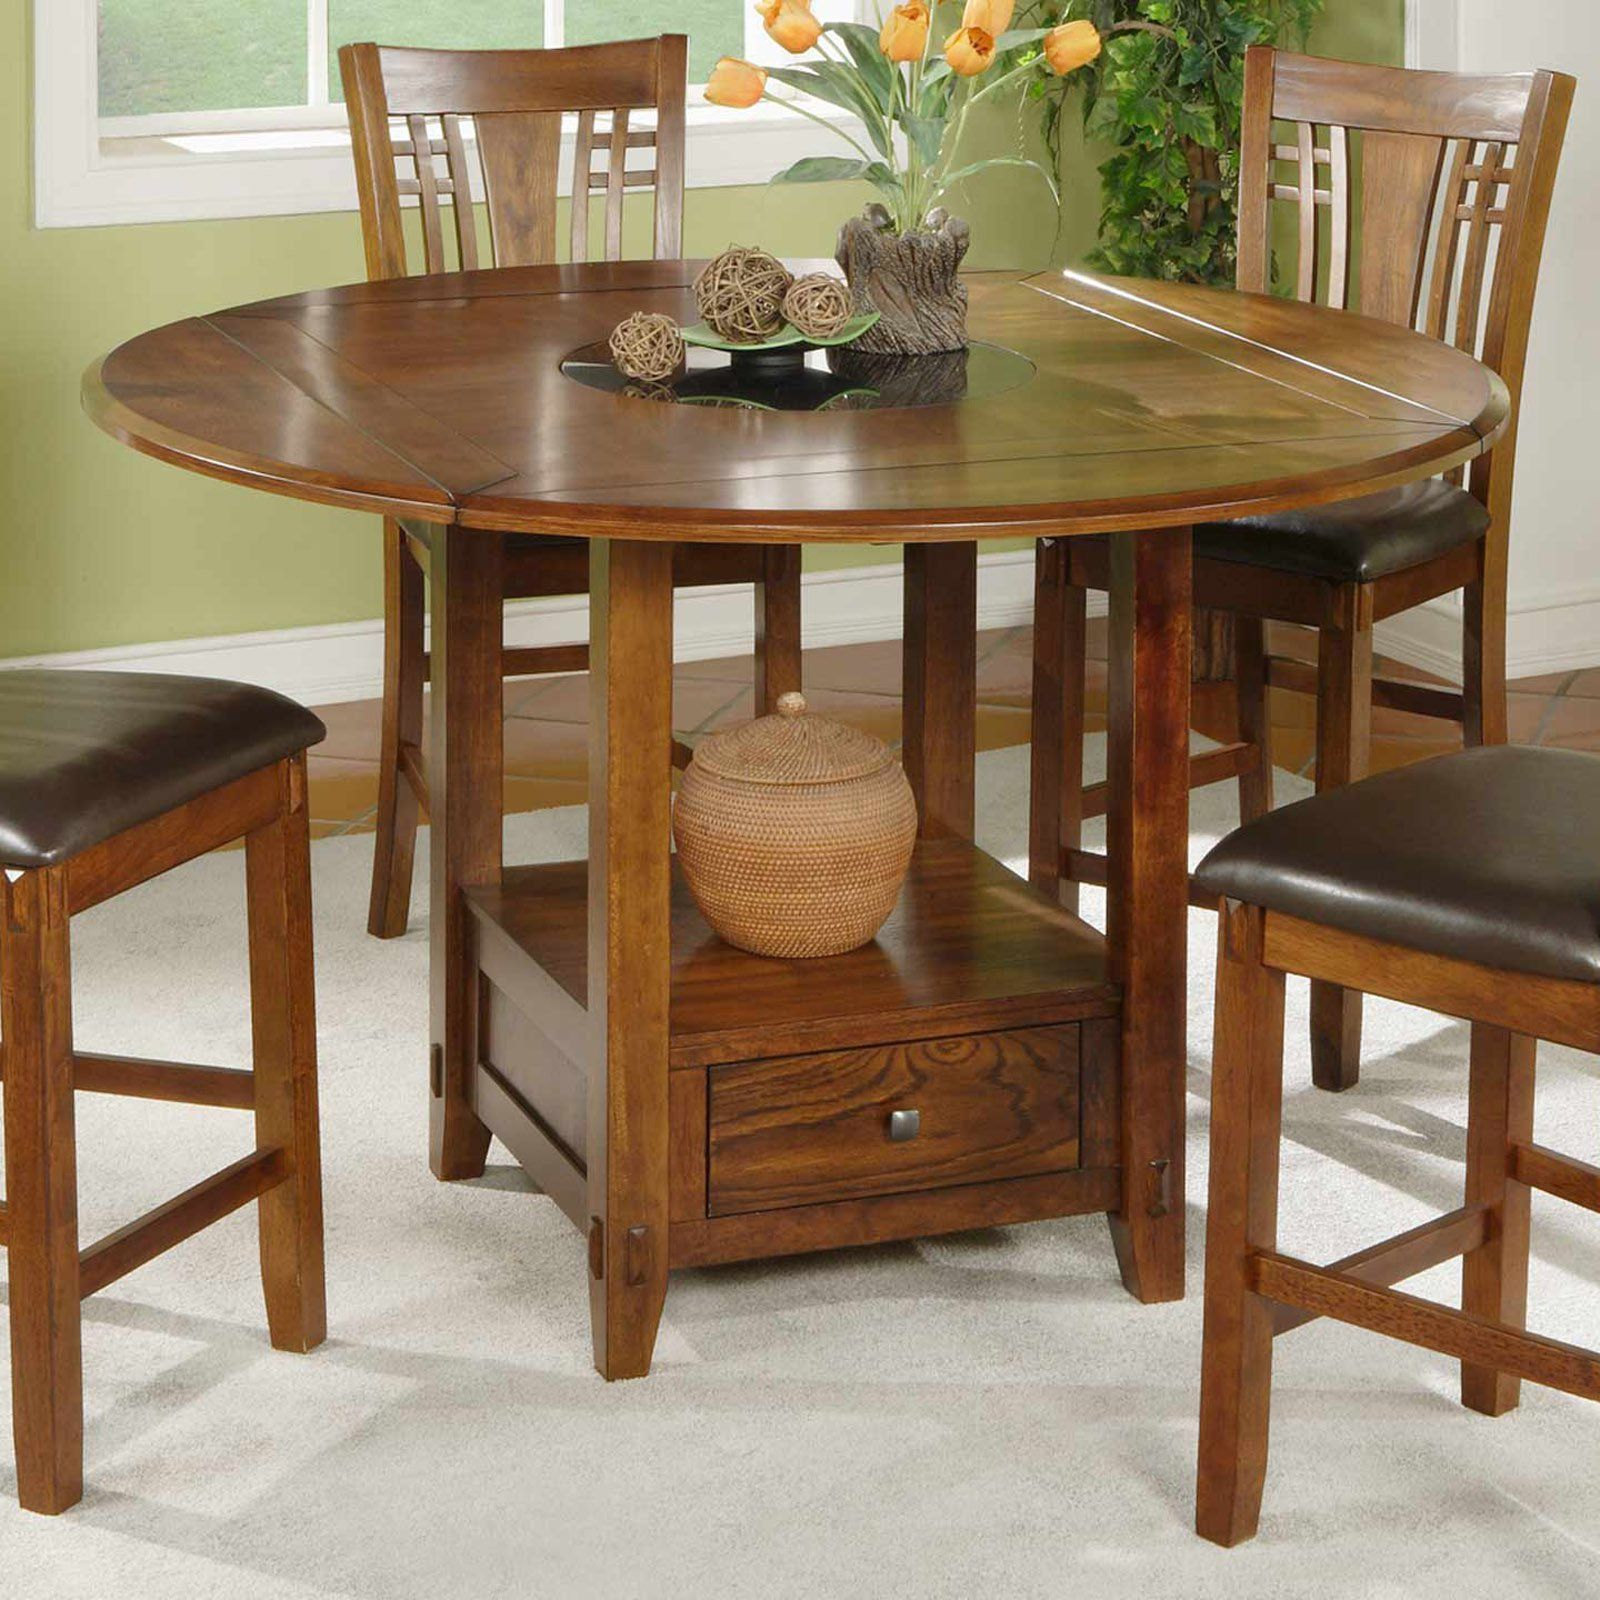 42330dde39a Winners Only Zahara Round Counter Height Dining Table with Granite Lazy  Susan